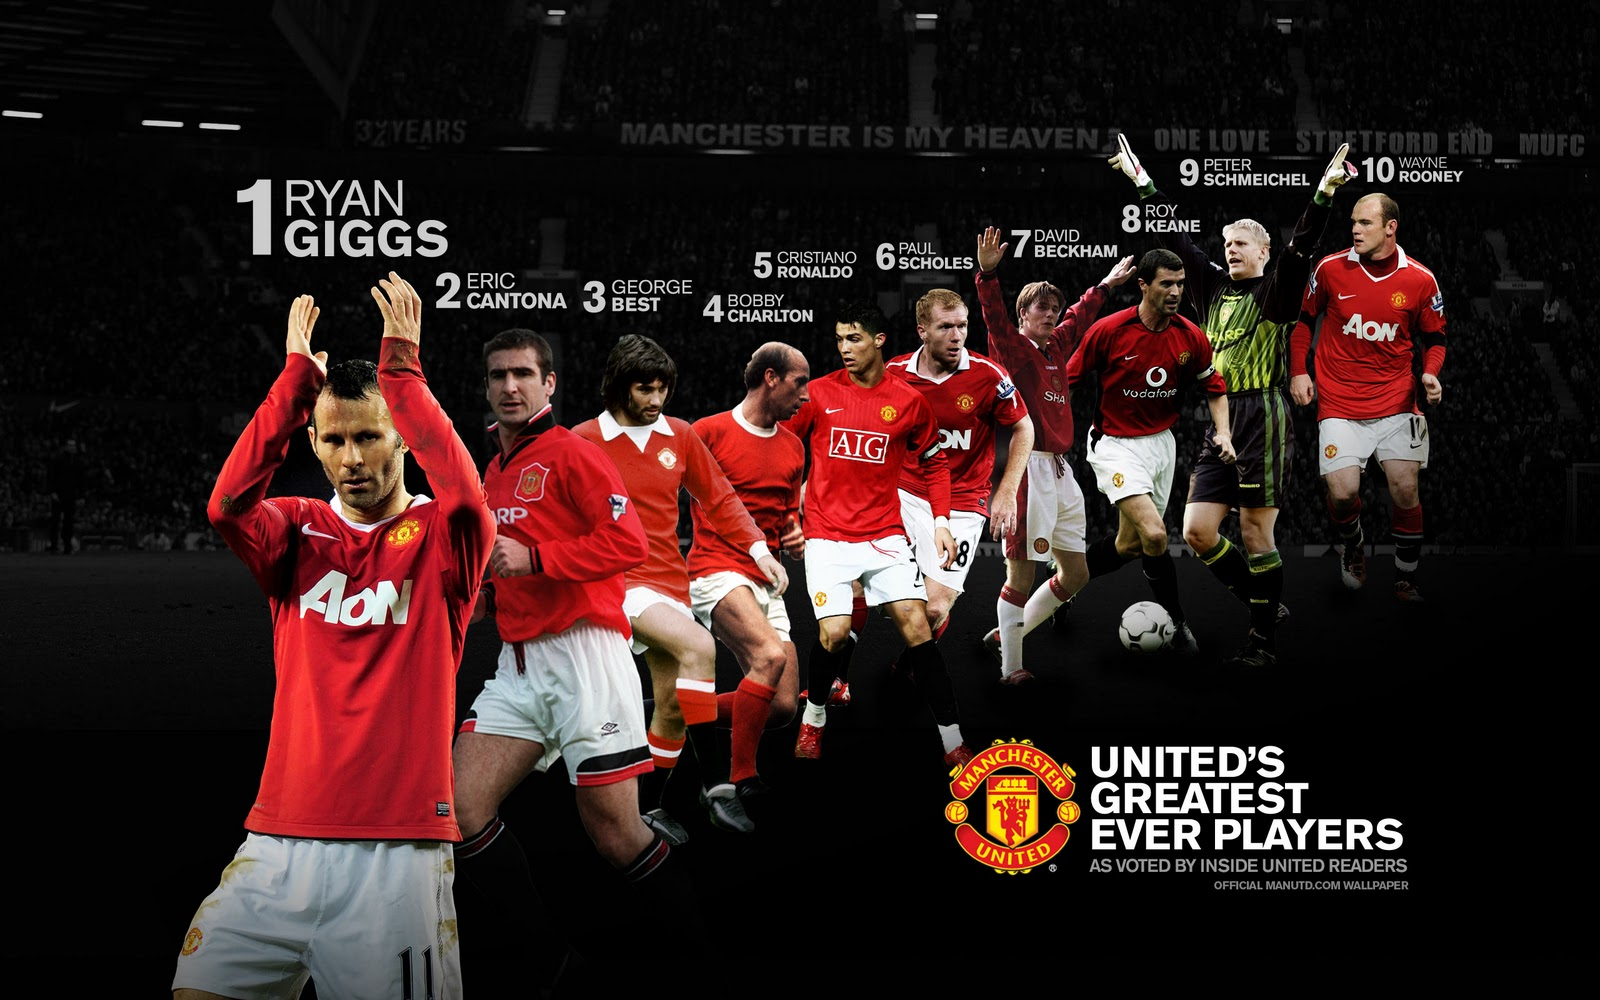 http://1.bp.blogspot.com/-kwFc-MCV908/T_-a_vg5CMI/AAAAAAAAD5k/pWViaBAdBo8/s1600/manchester-united-best-player-wallpapers.jpg